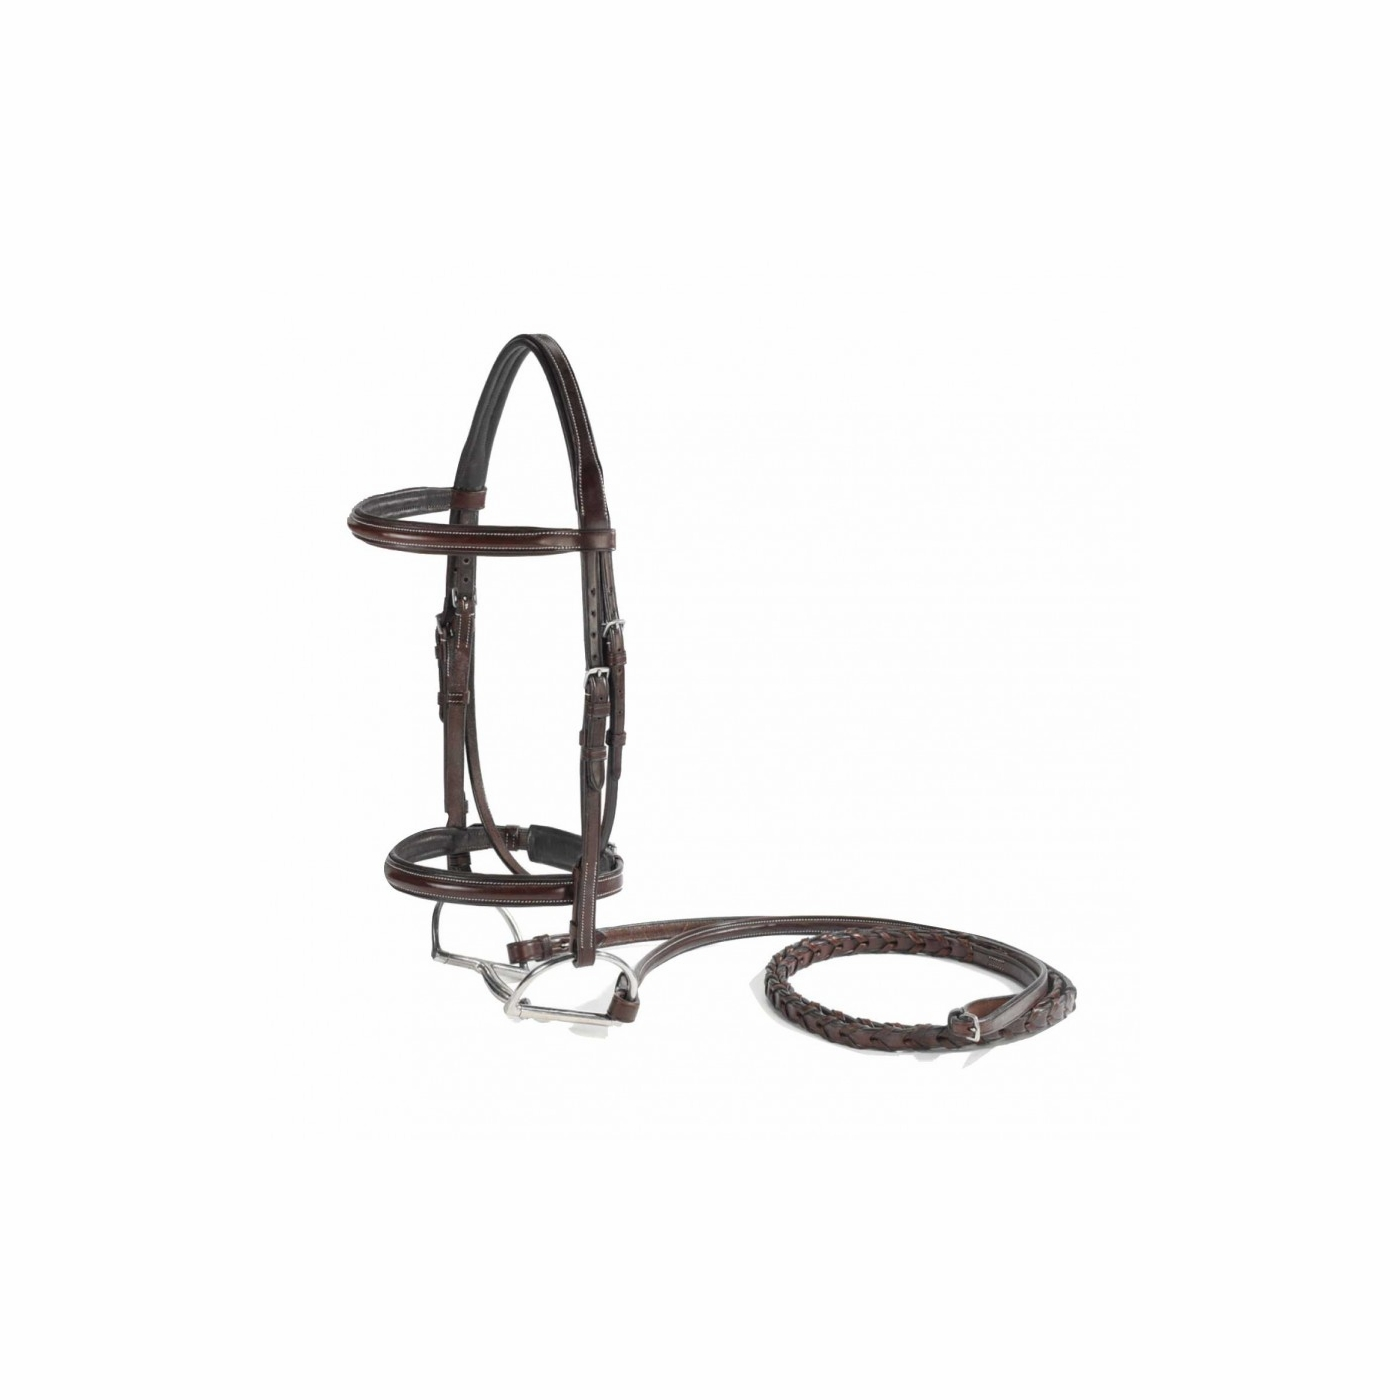 Fathead Wall Decals moreover Elliptical Link Uxeter Kimberwick Bit 1518 additionally T815 P 1000 Altrider Crash Bars in addition Rifle Case Pattern P6028 p 560 likewise P 0996b43f802e310f. on saddle repair hardware